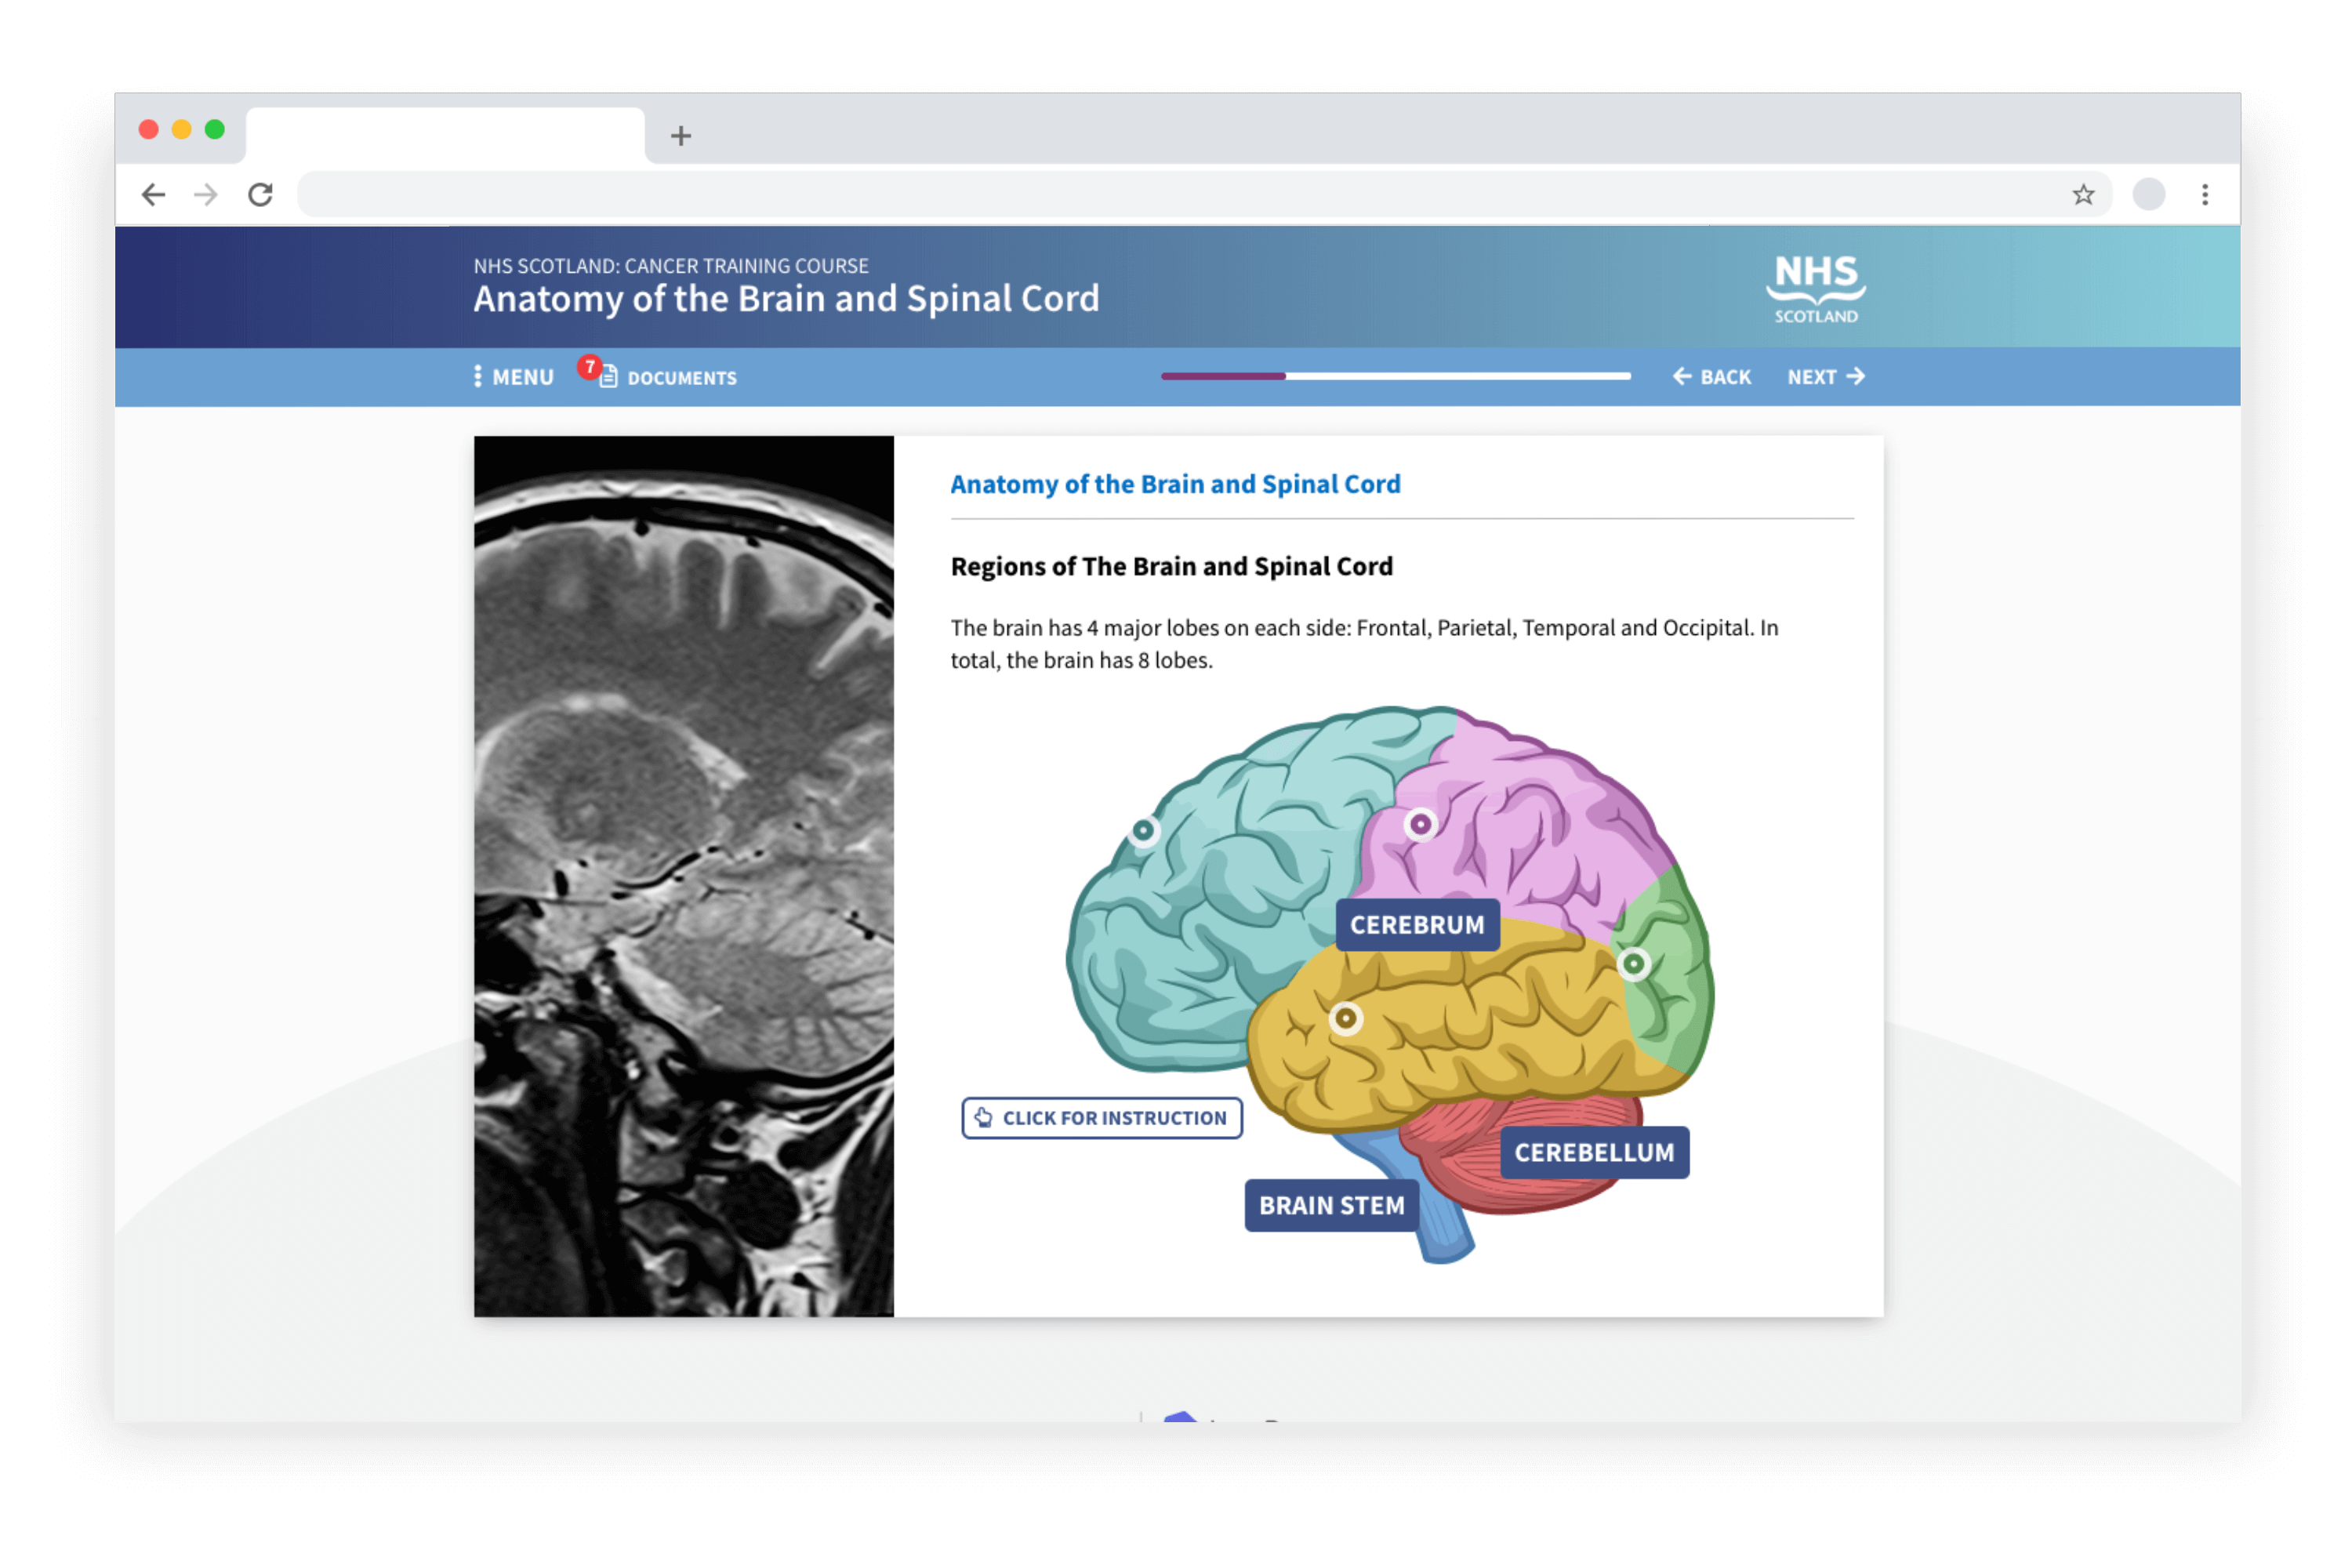 Example e-learning showing an Anatomy of the Brain and Spinal Cord course developed in LAB Advanced